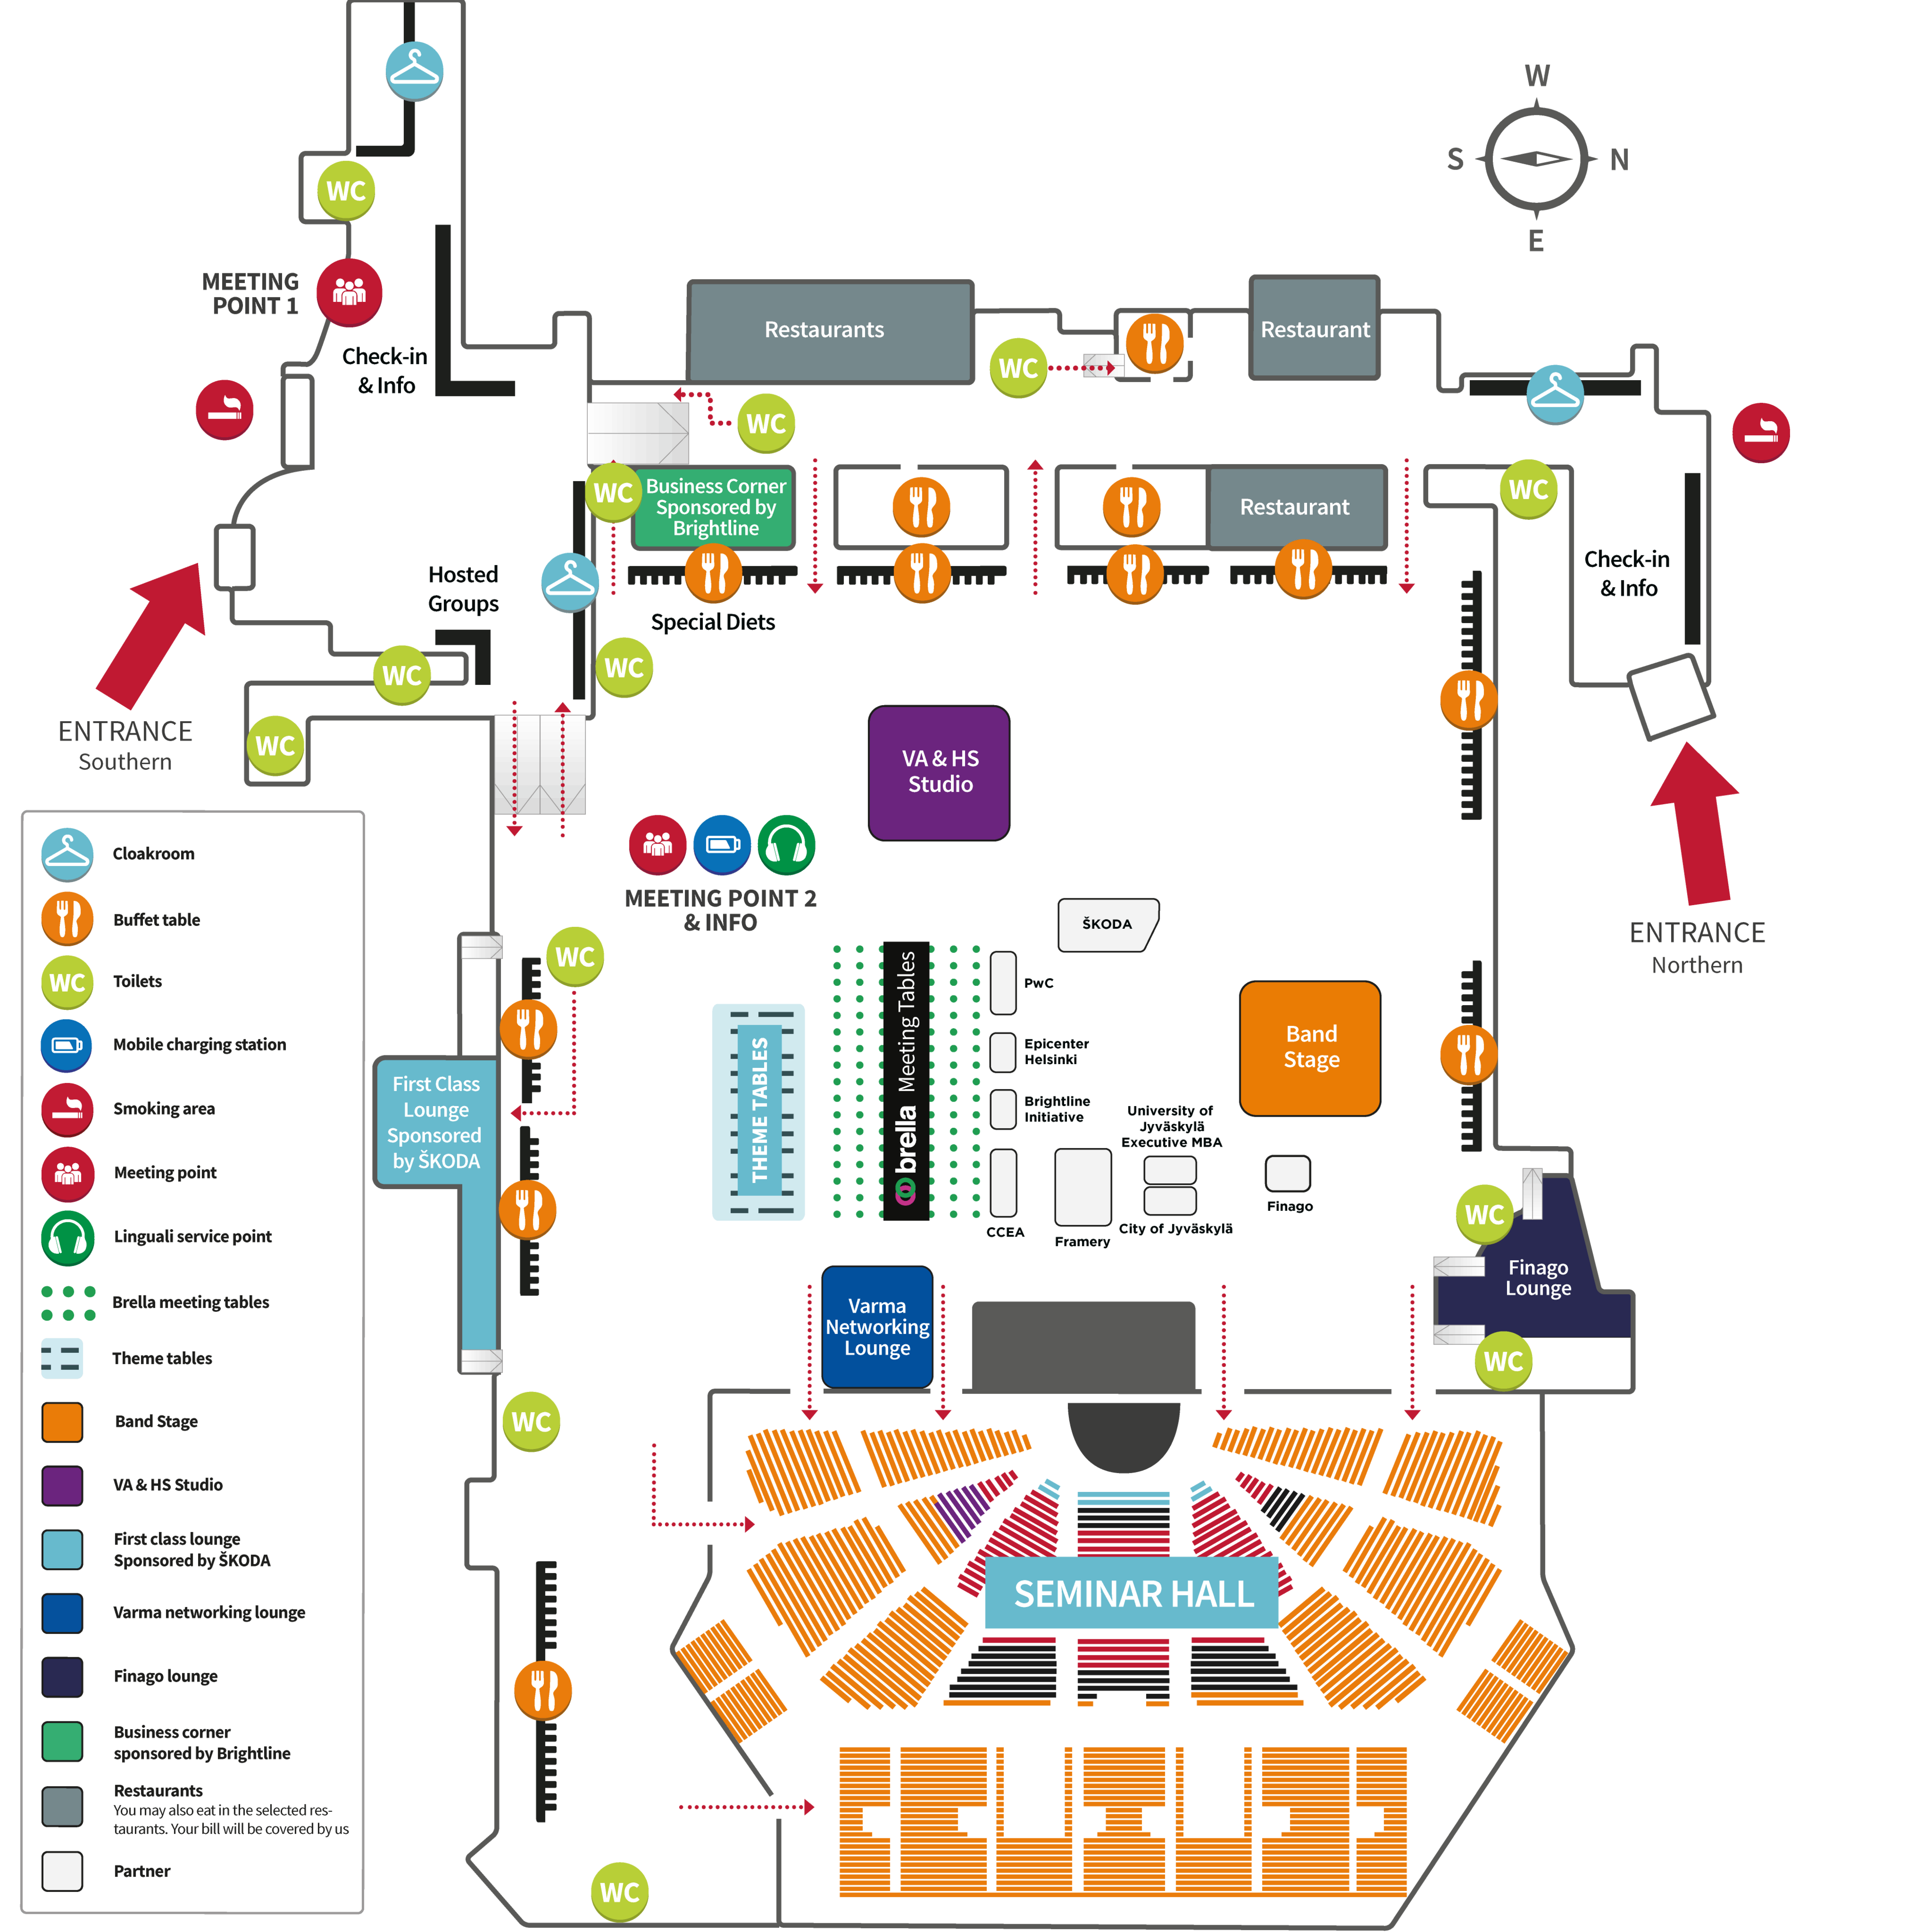 NBF2018 Venue map